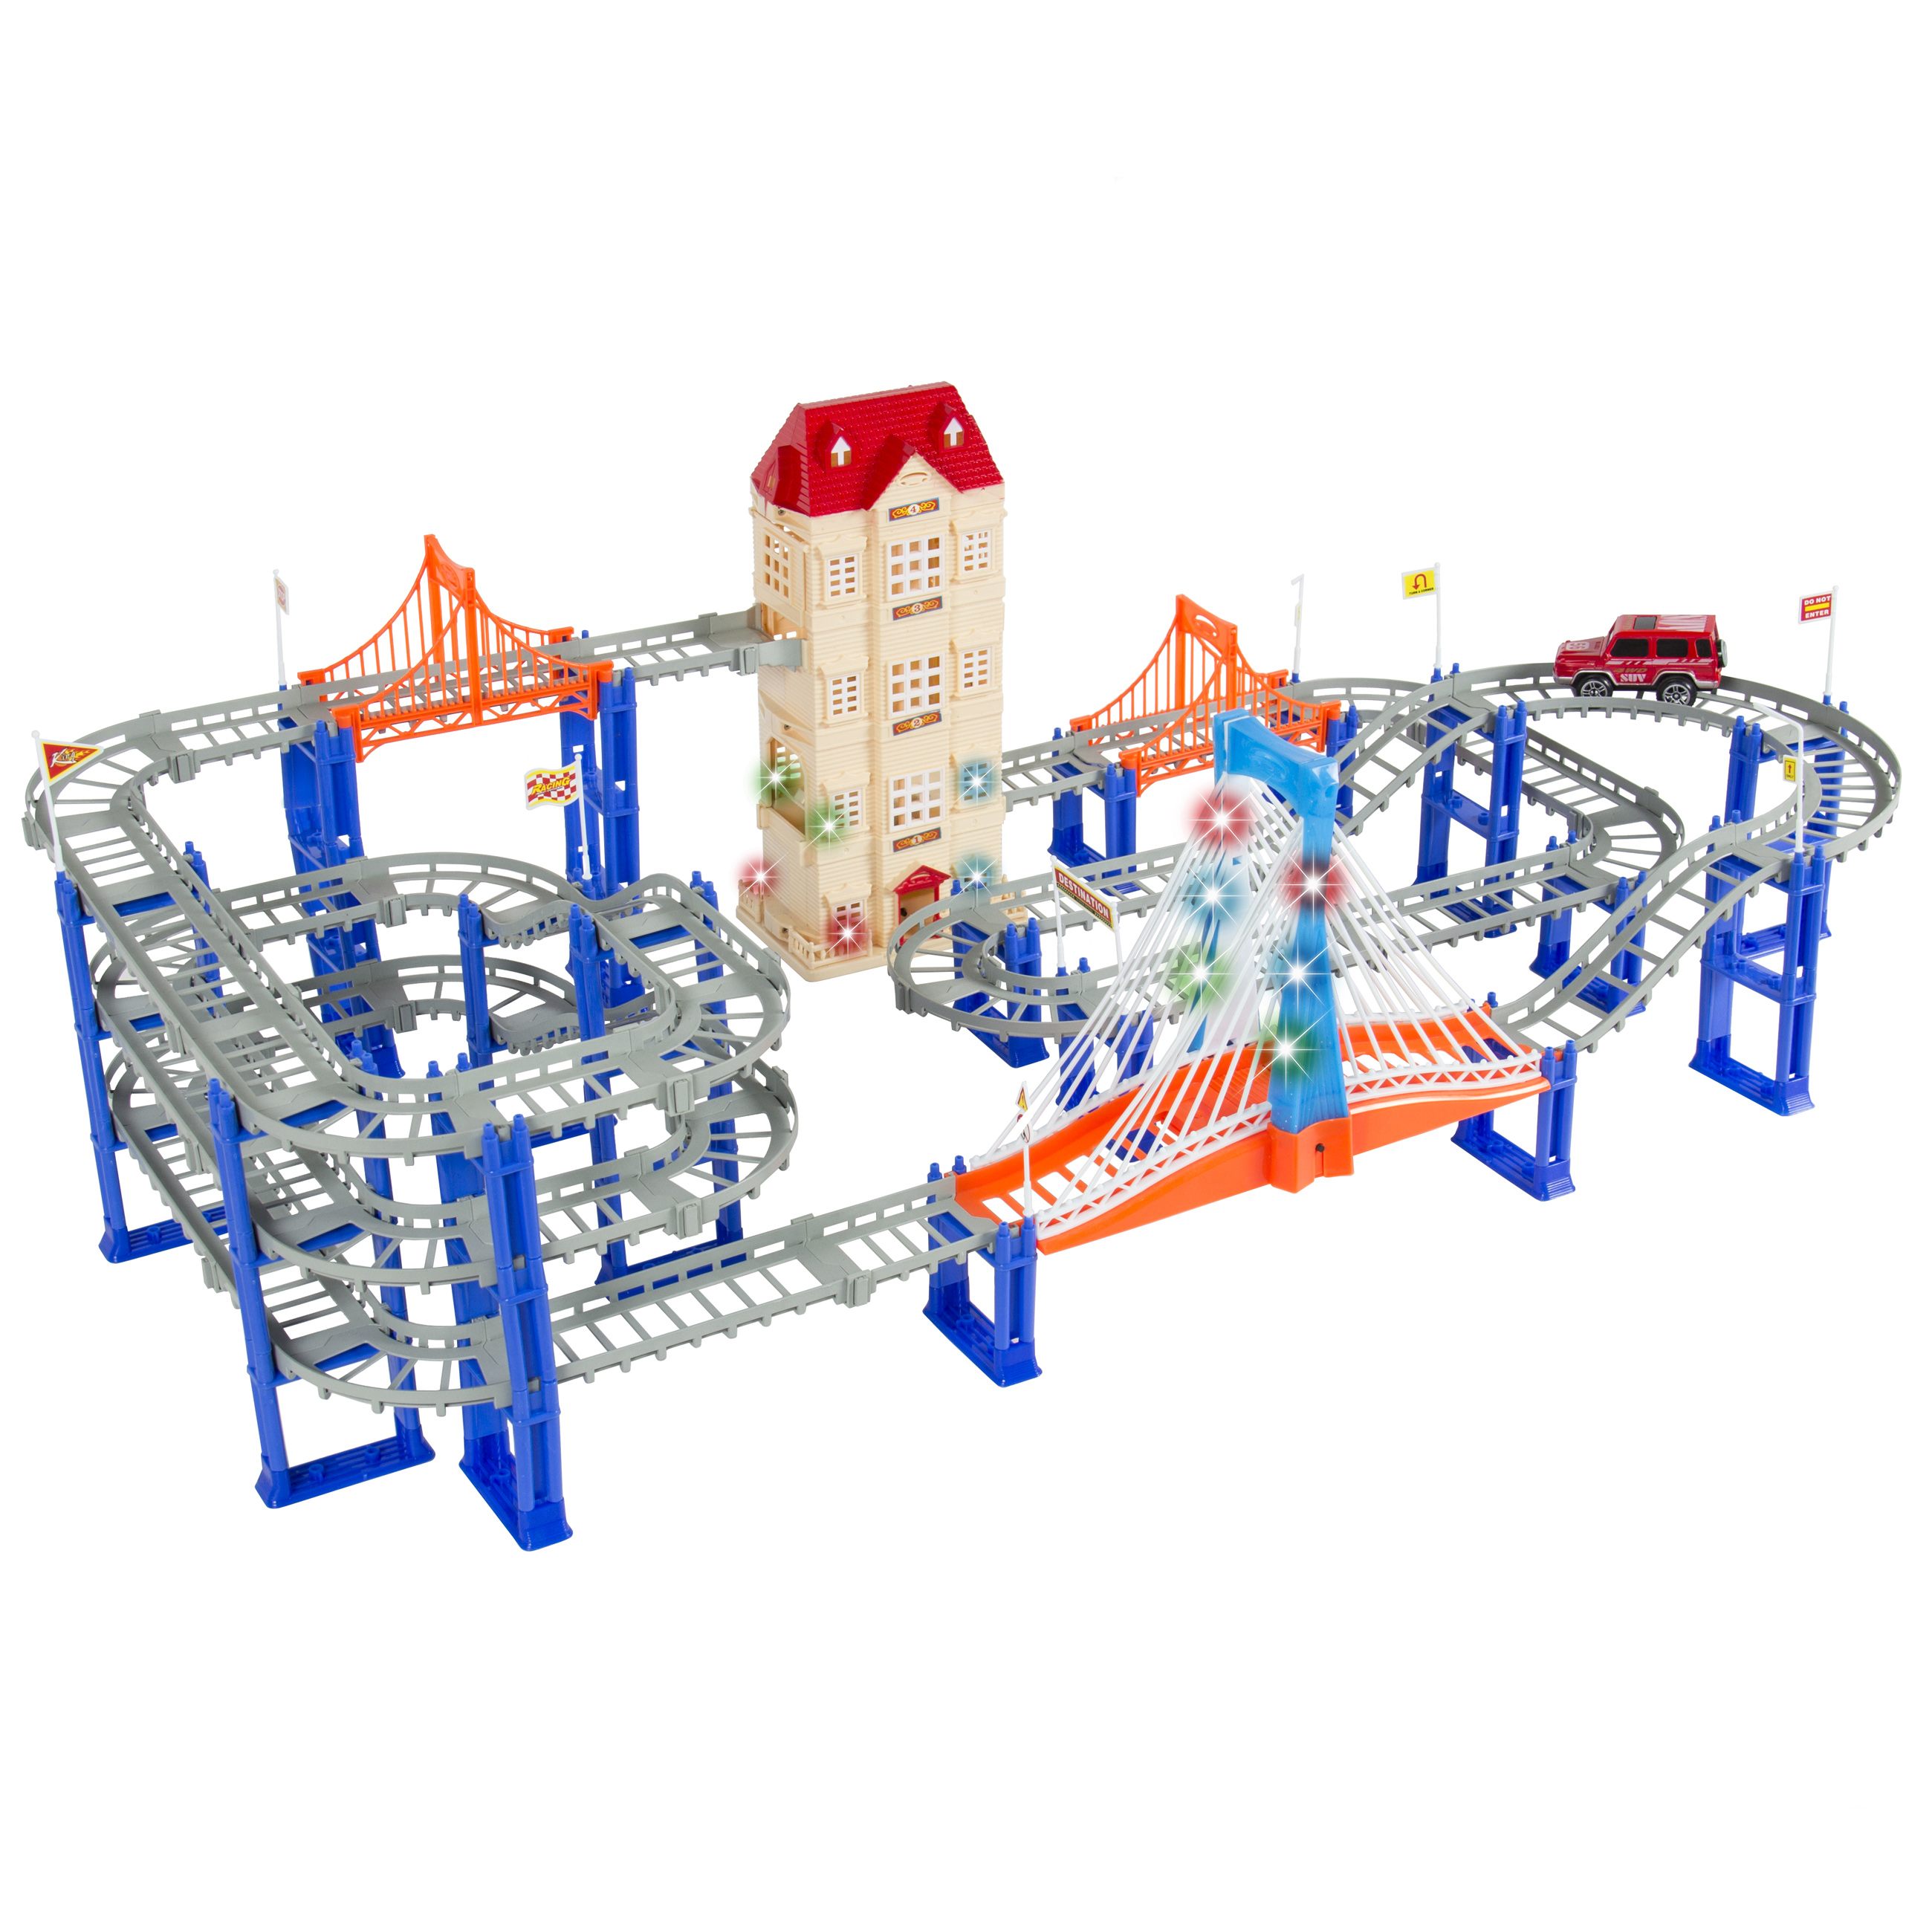 156pc Car Pretend Race Track Playset 3 Level Highway Tracks with Electric SUV Car, Lift Elevator, Music and Lights